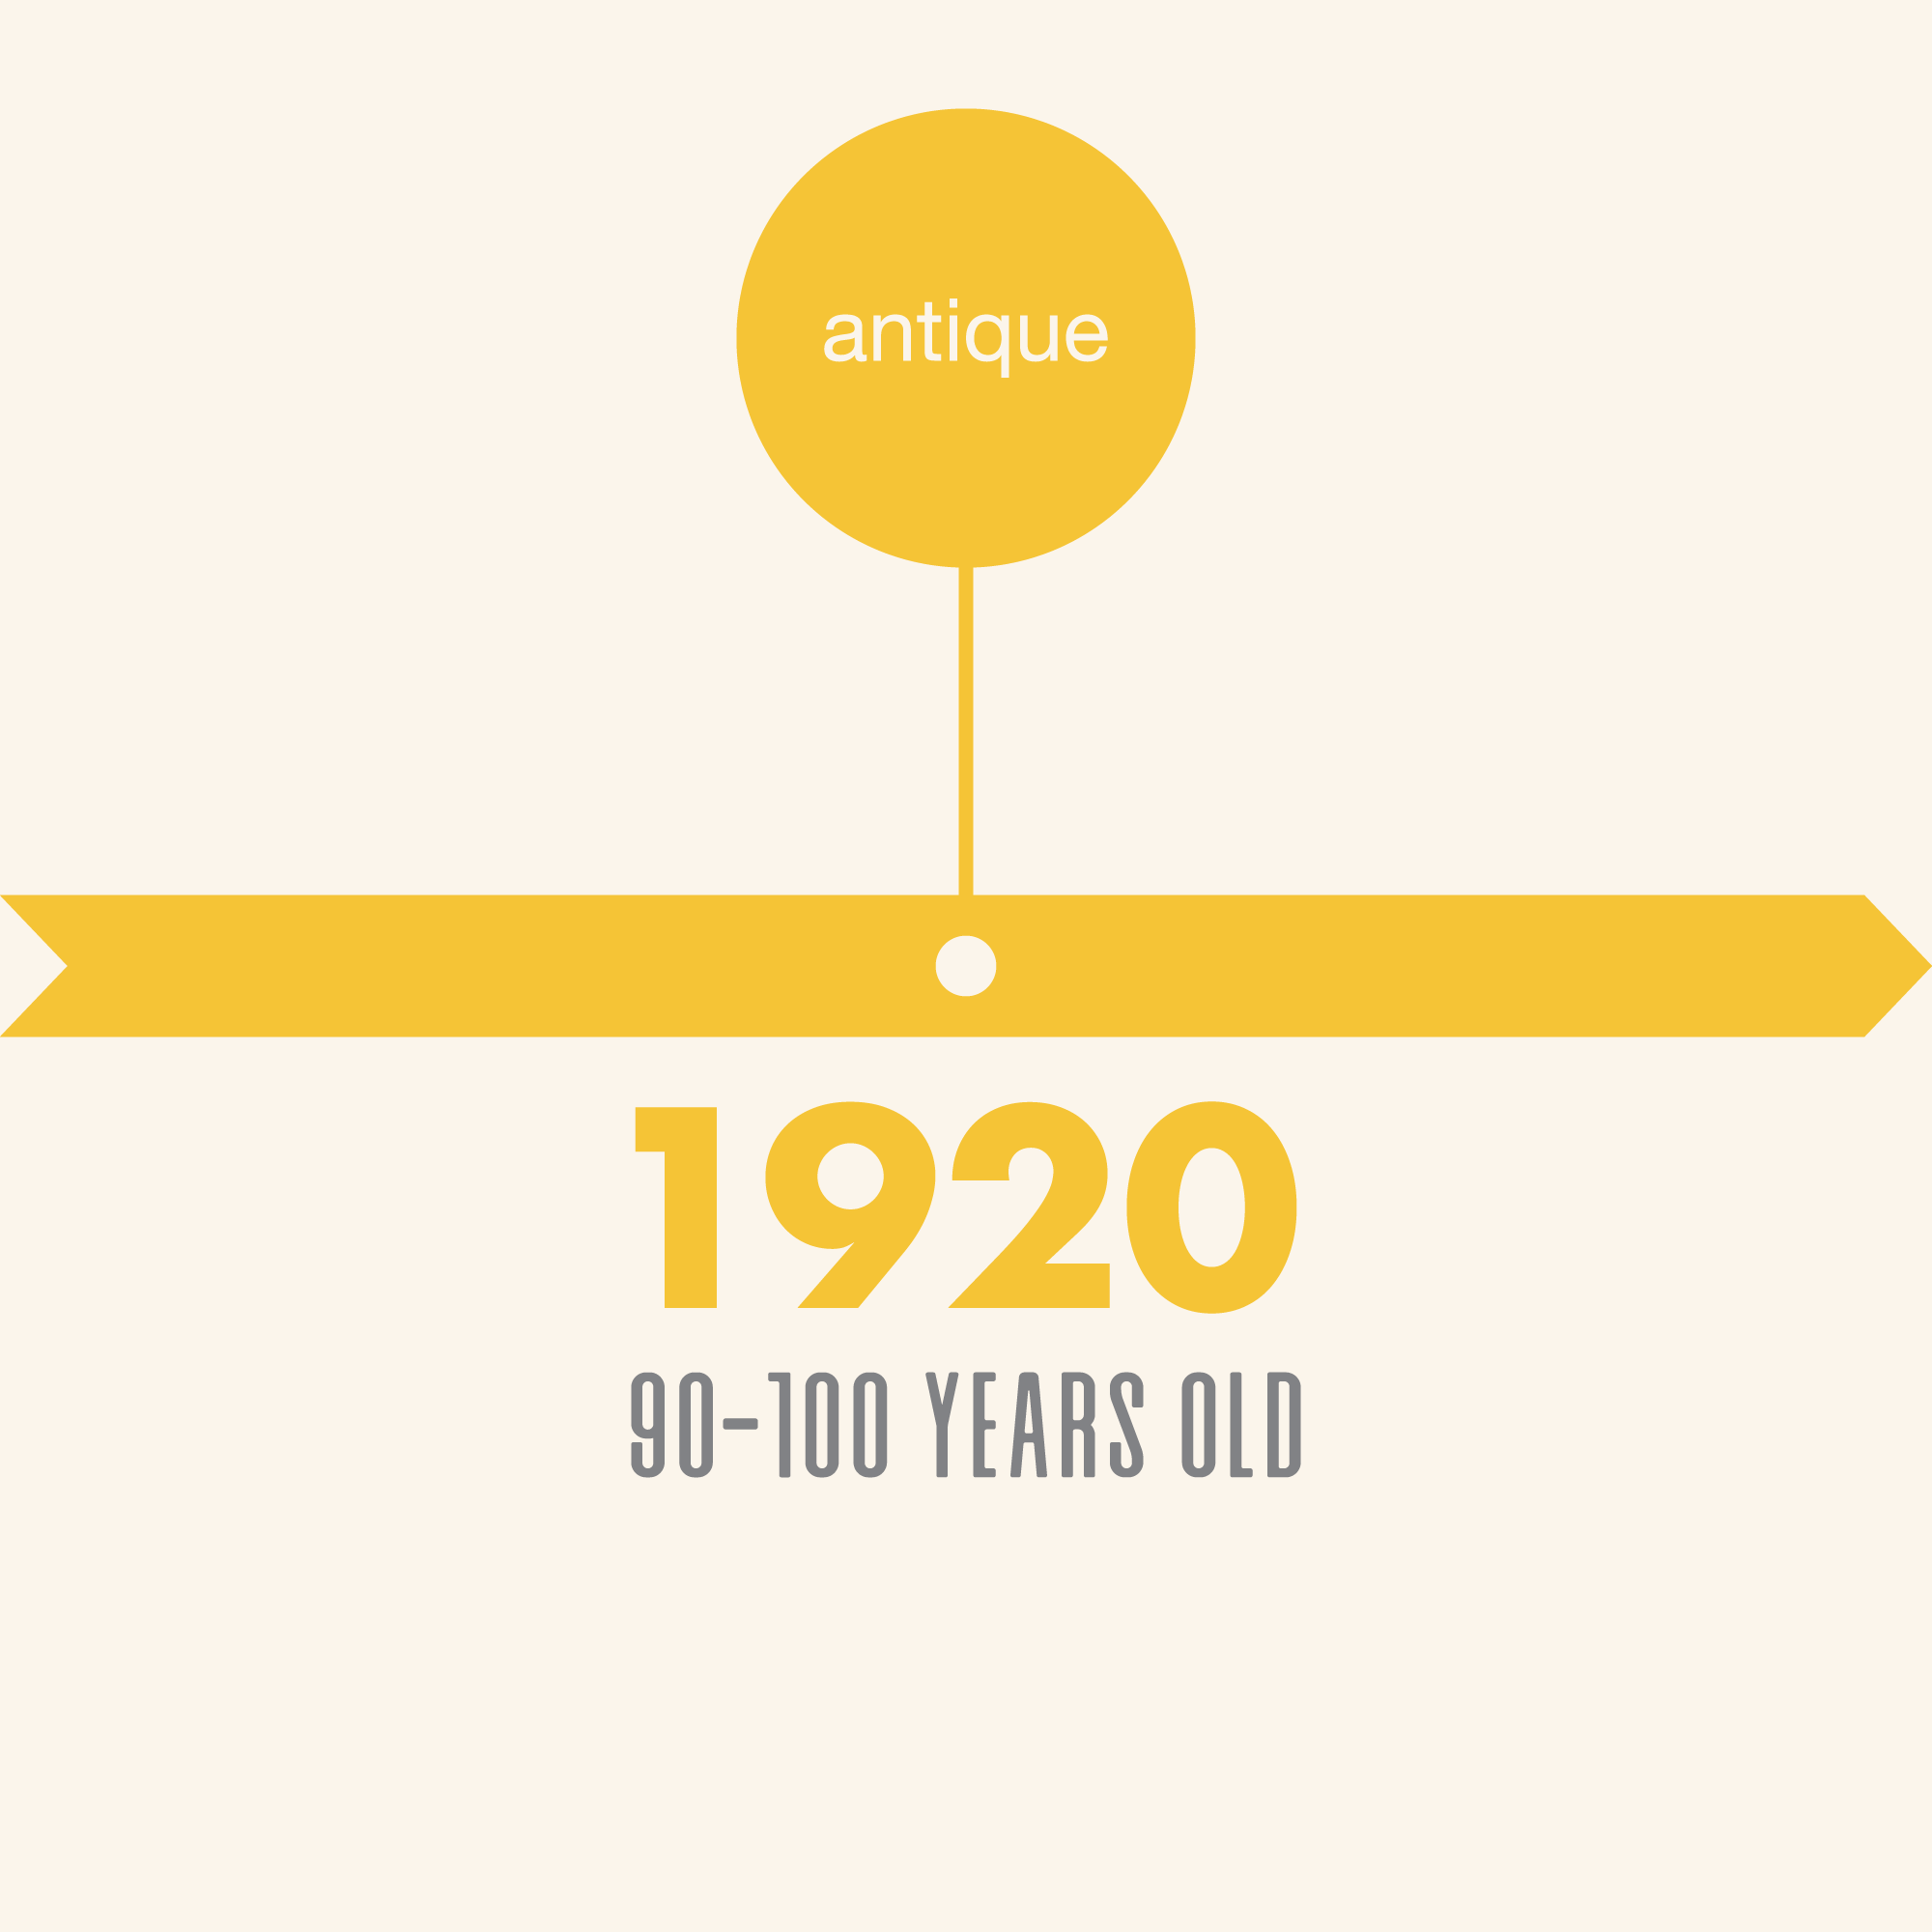 product-attribute-1920